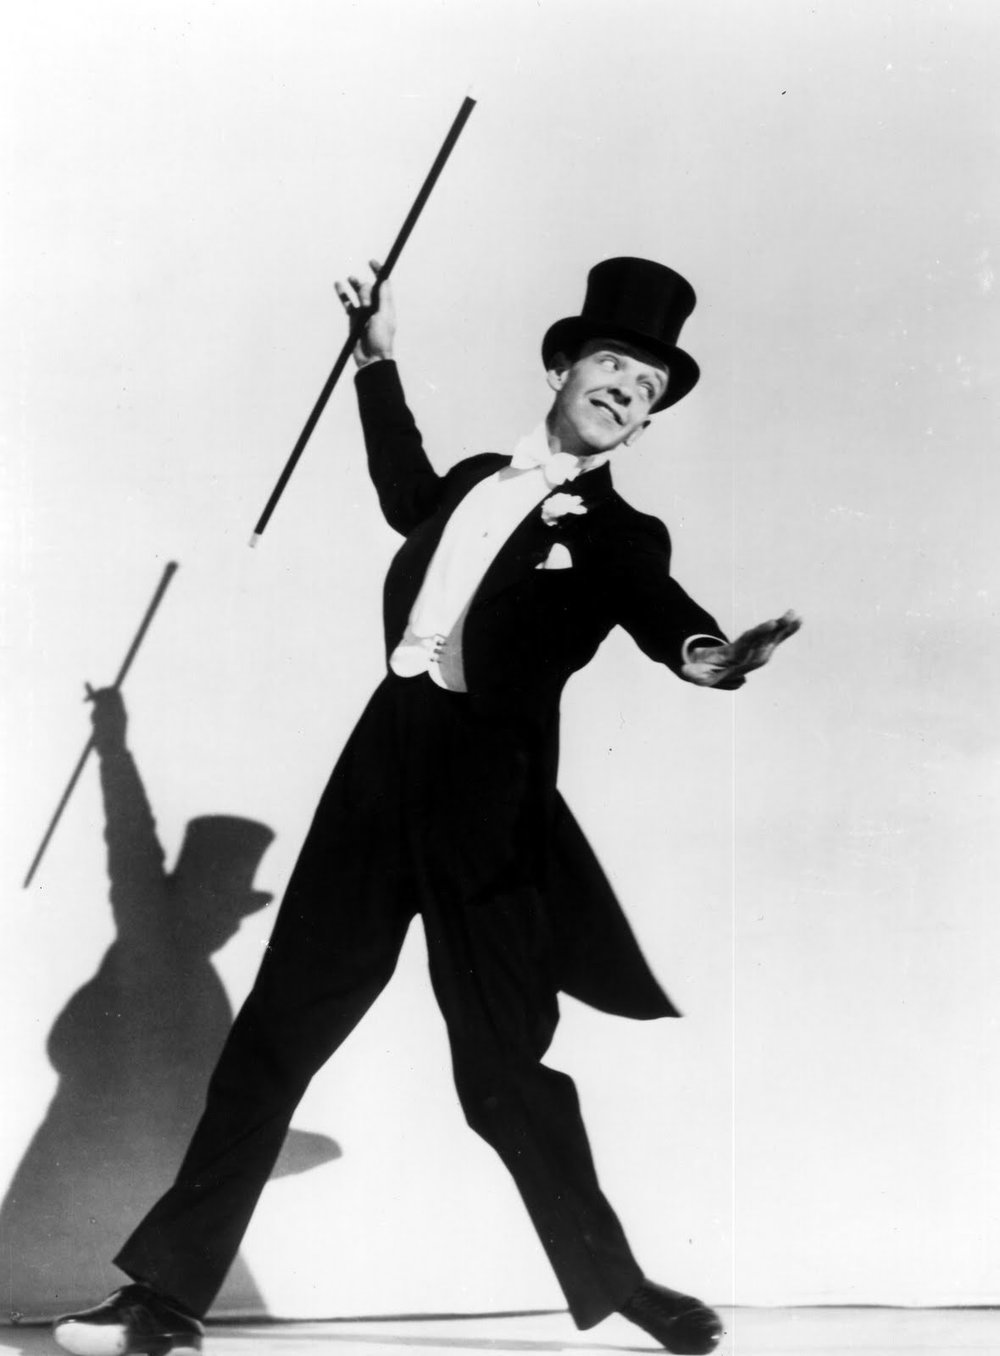 身著燕尾服的踢踏舞巨星 Fred Astaire( via :  Pinterest )